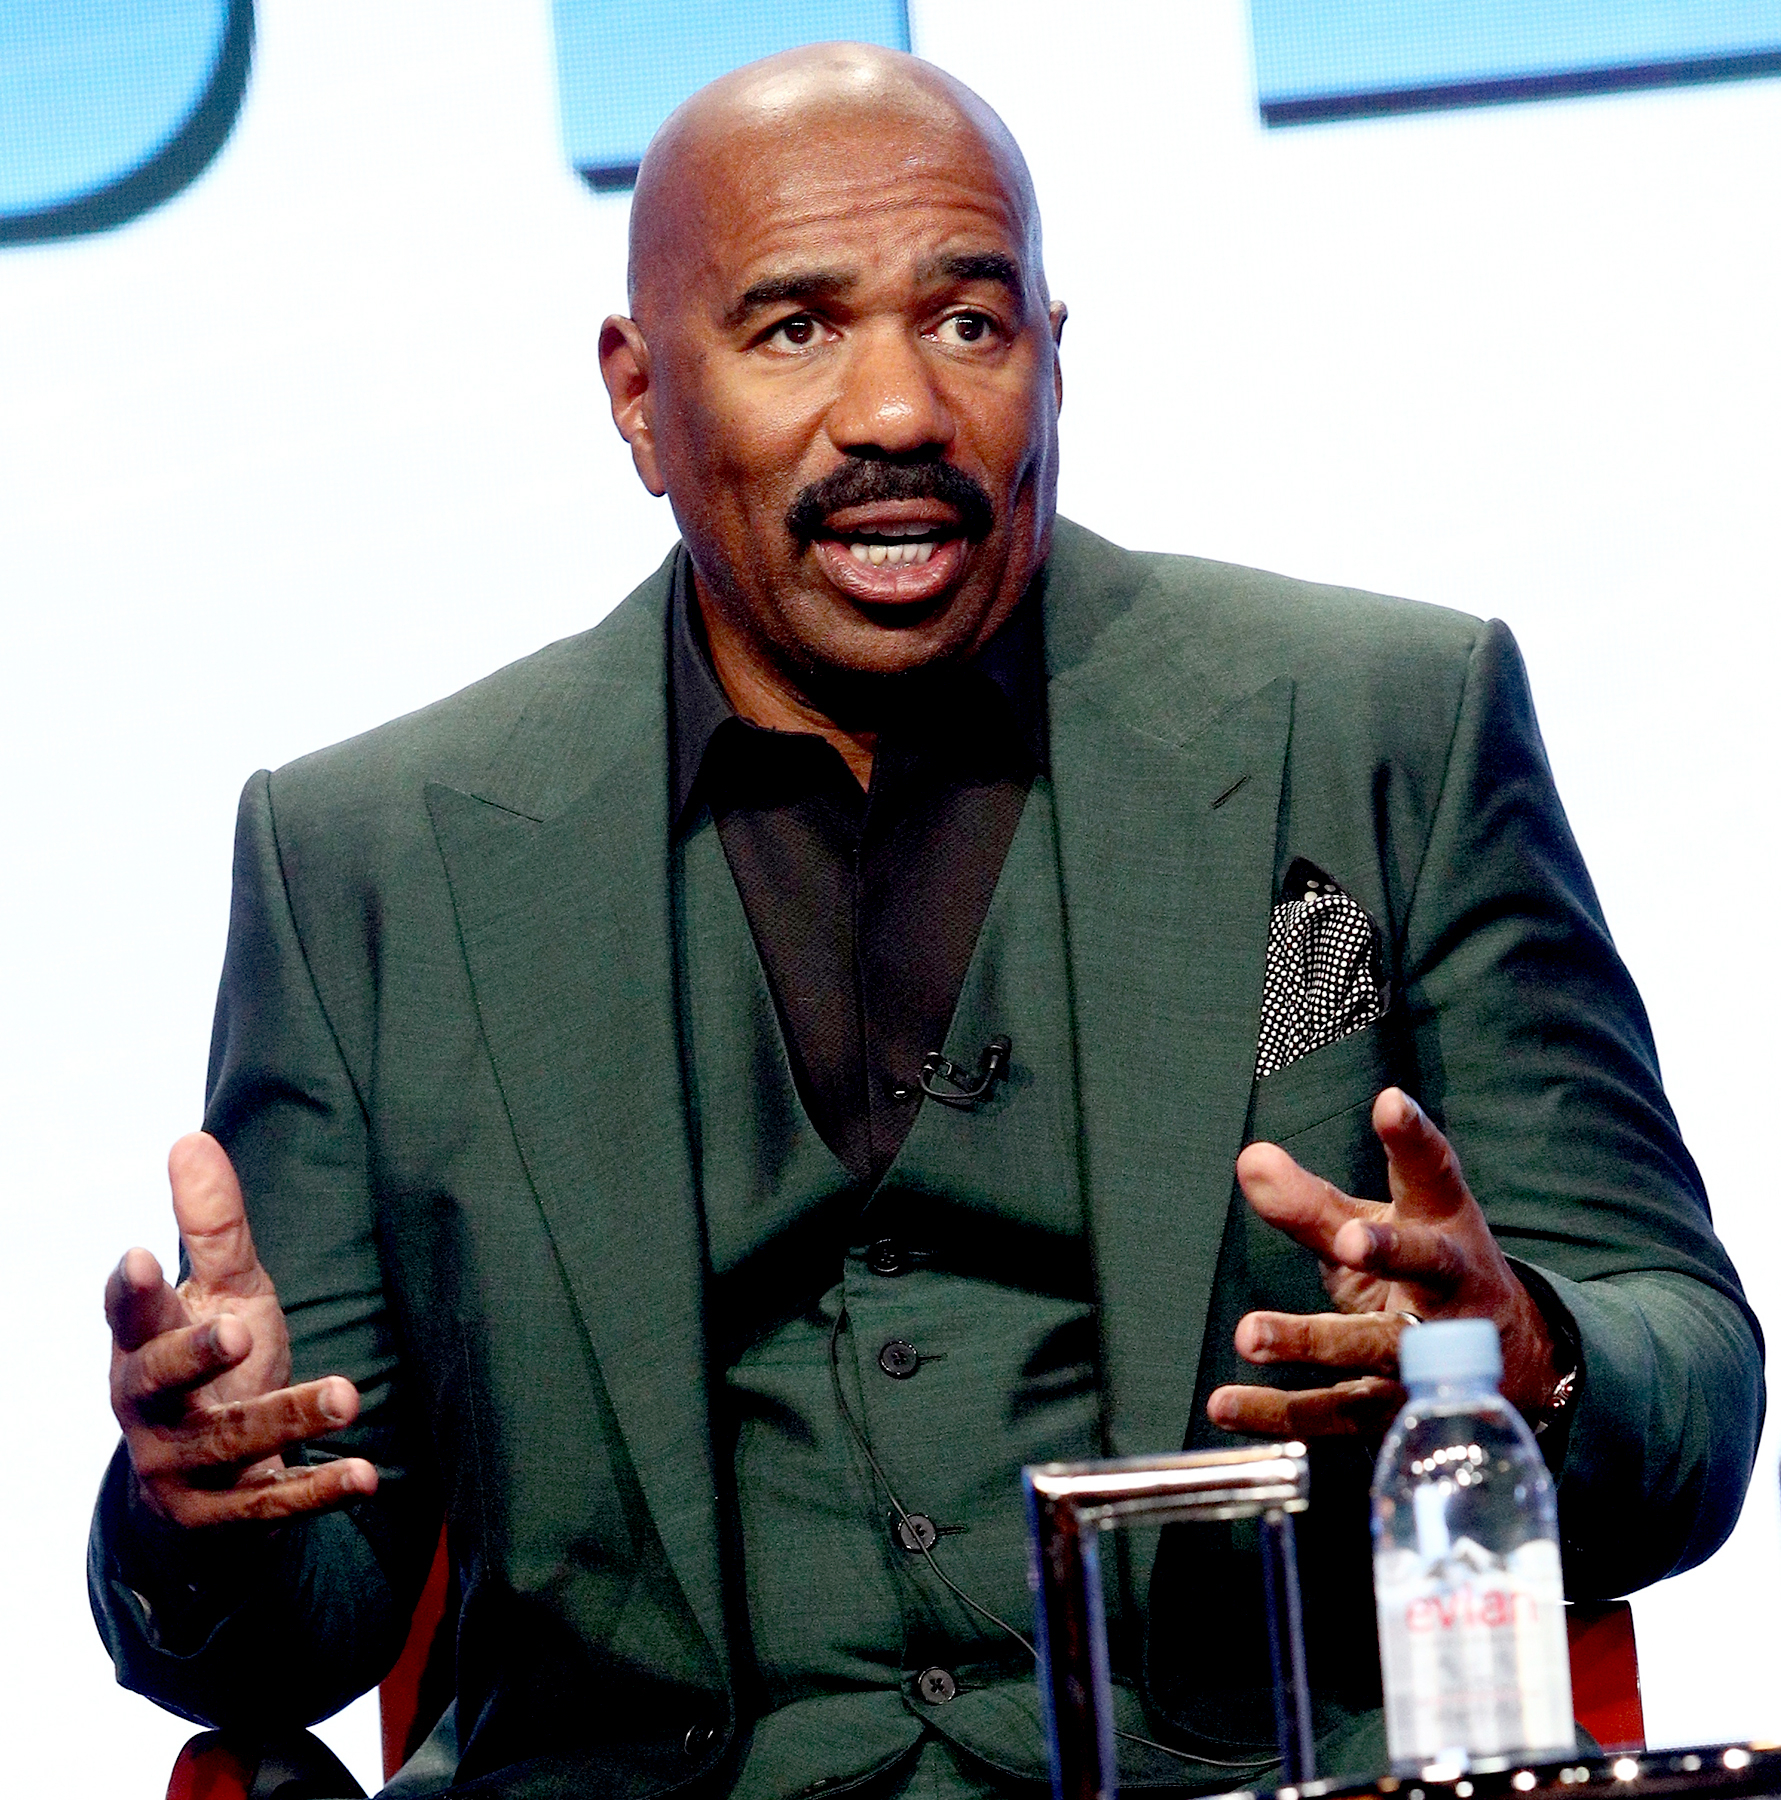 Steve Harvey of 'STEVE' speaks onstage during the NBCUniversal portion of the 2017 Summer Television Critics Association Press Tour at The Beverly Hilton Hotel on August 3, 2017 in Beverly Hills, California.